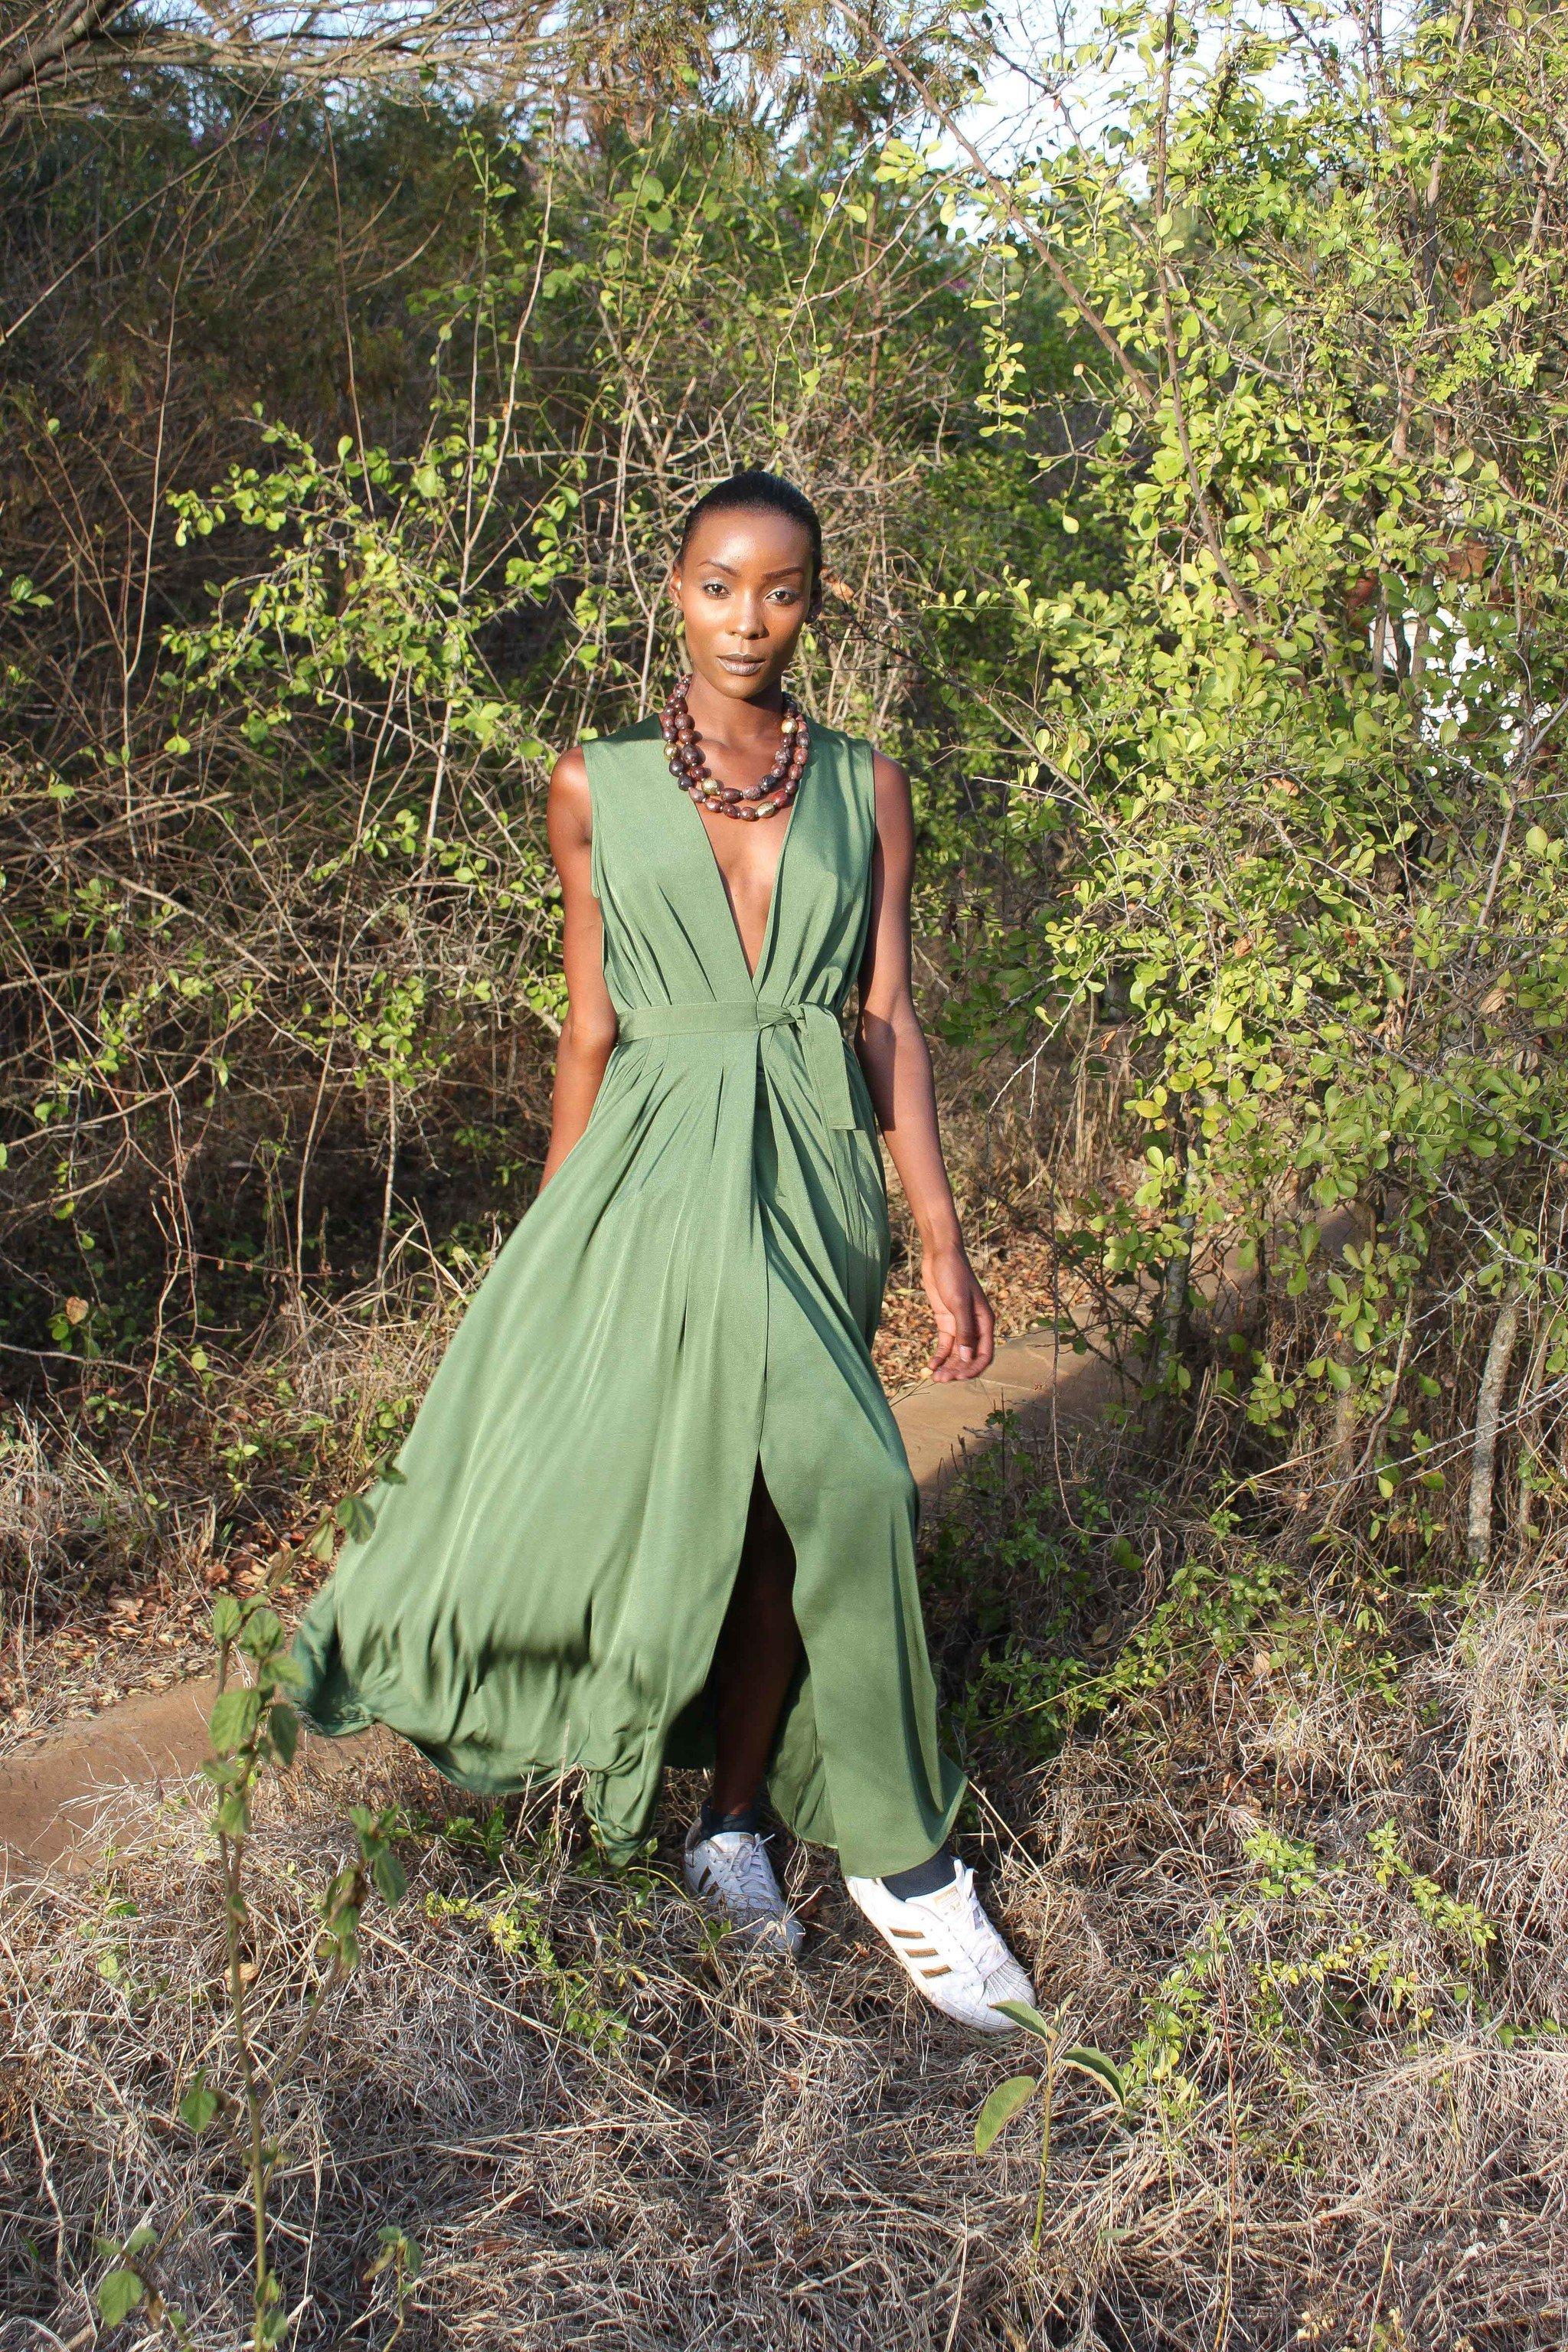 shopping Style + Design Travel Trends Trip Ideas tree outdoor person clothing green man dress girl standing fashion plant grass Jungle photo shoot model Forest grass family wood posing wooded